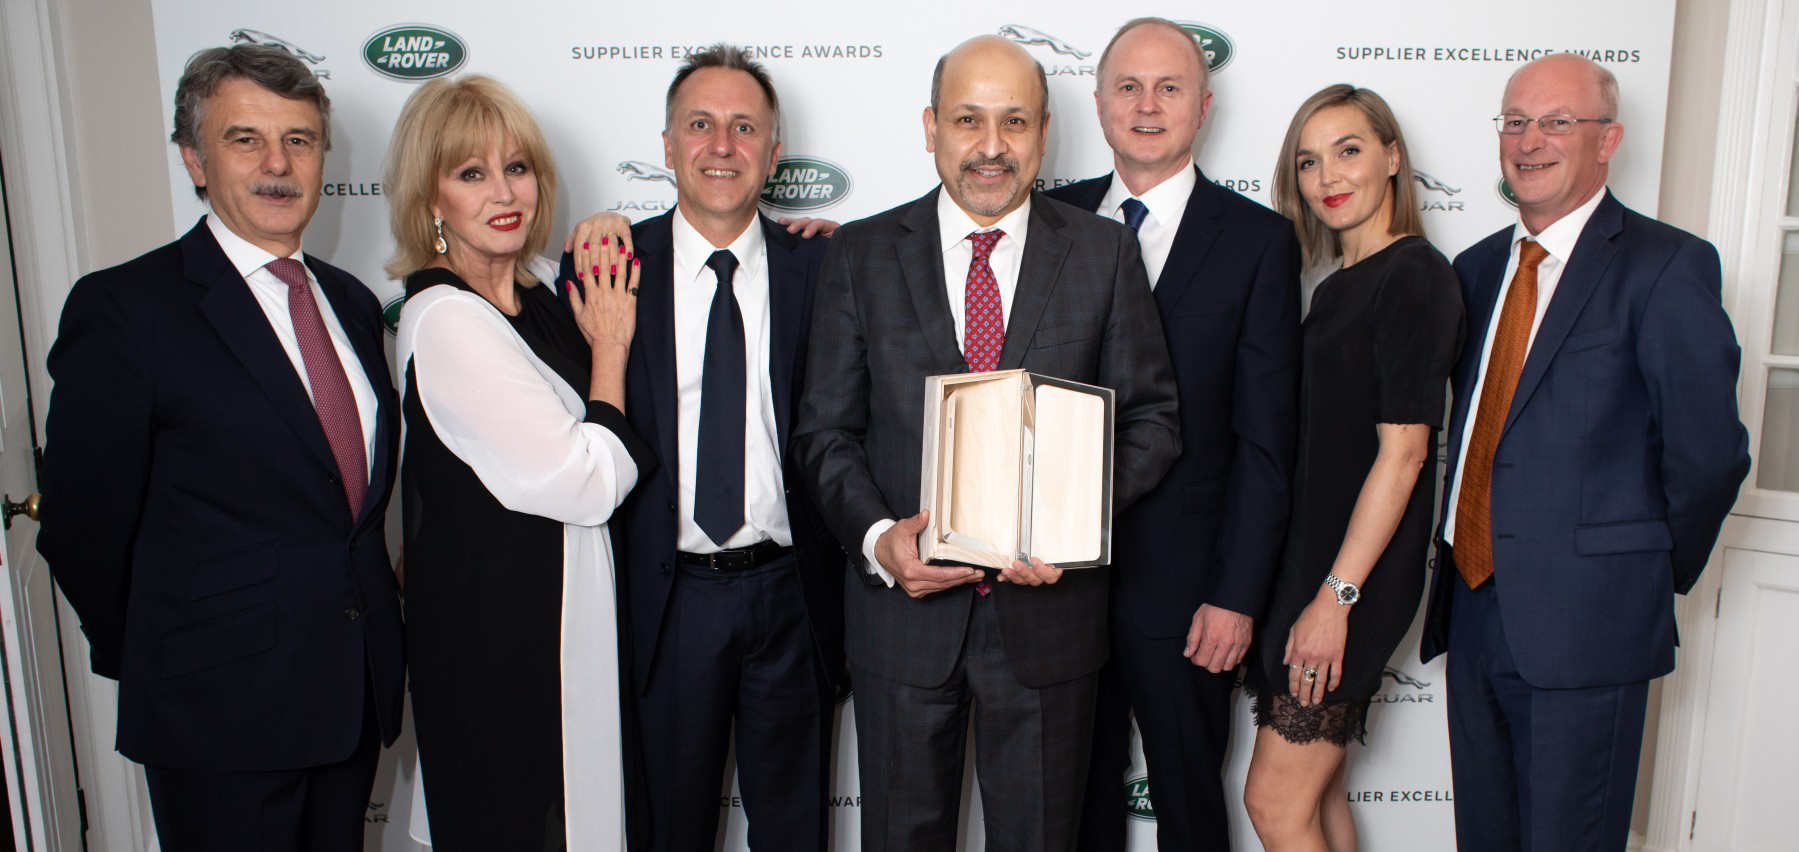 Visteon wins Jaguar Land Rover supplier excellence award for longstanding relationship and innovative technology